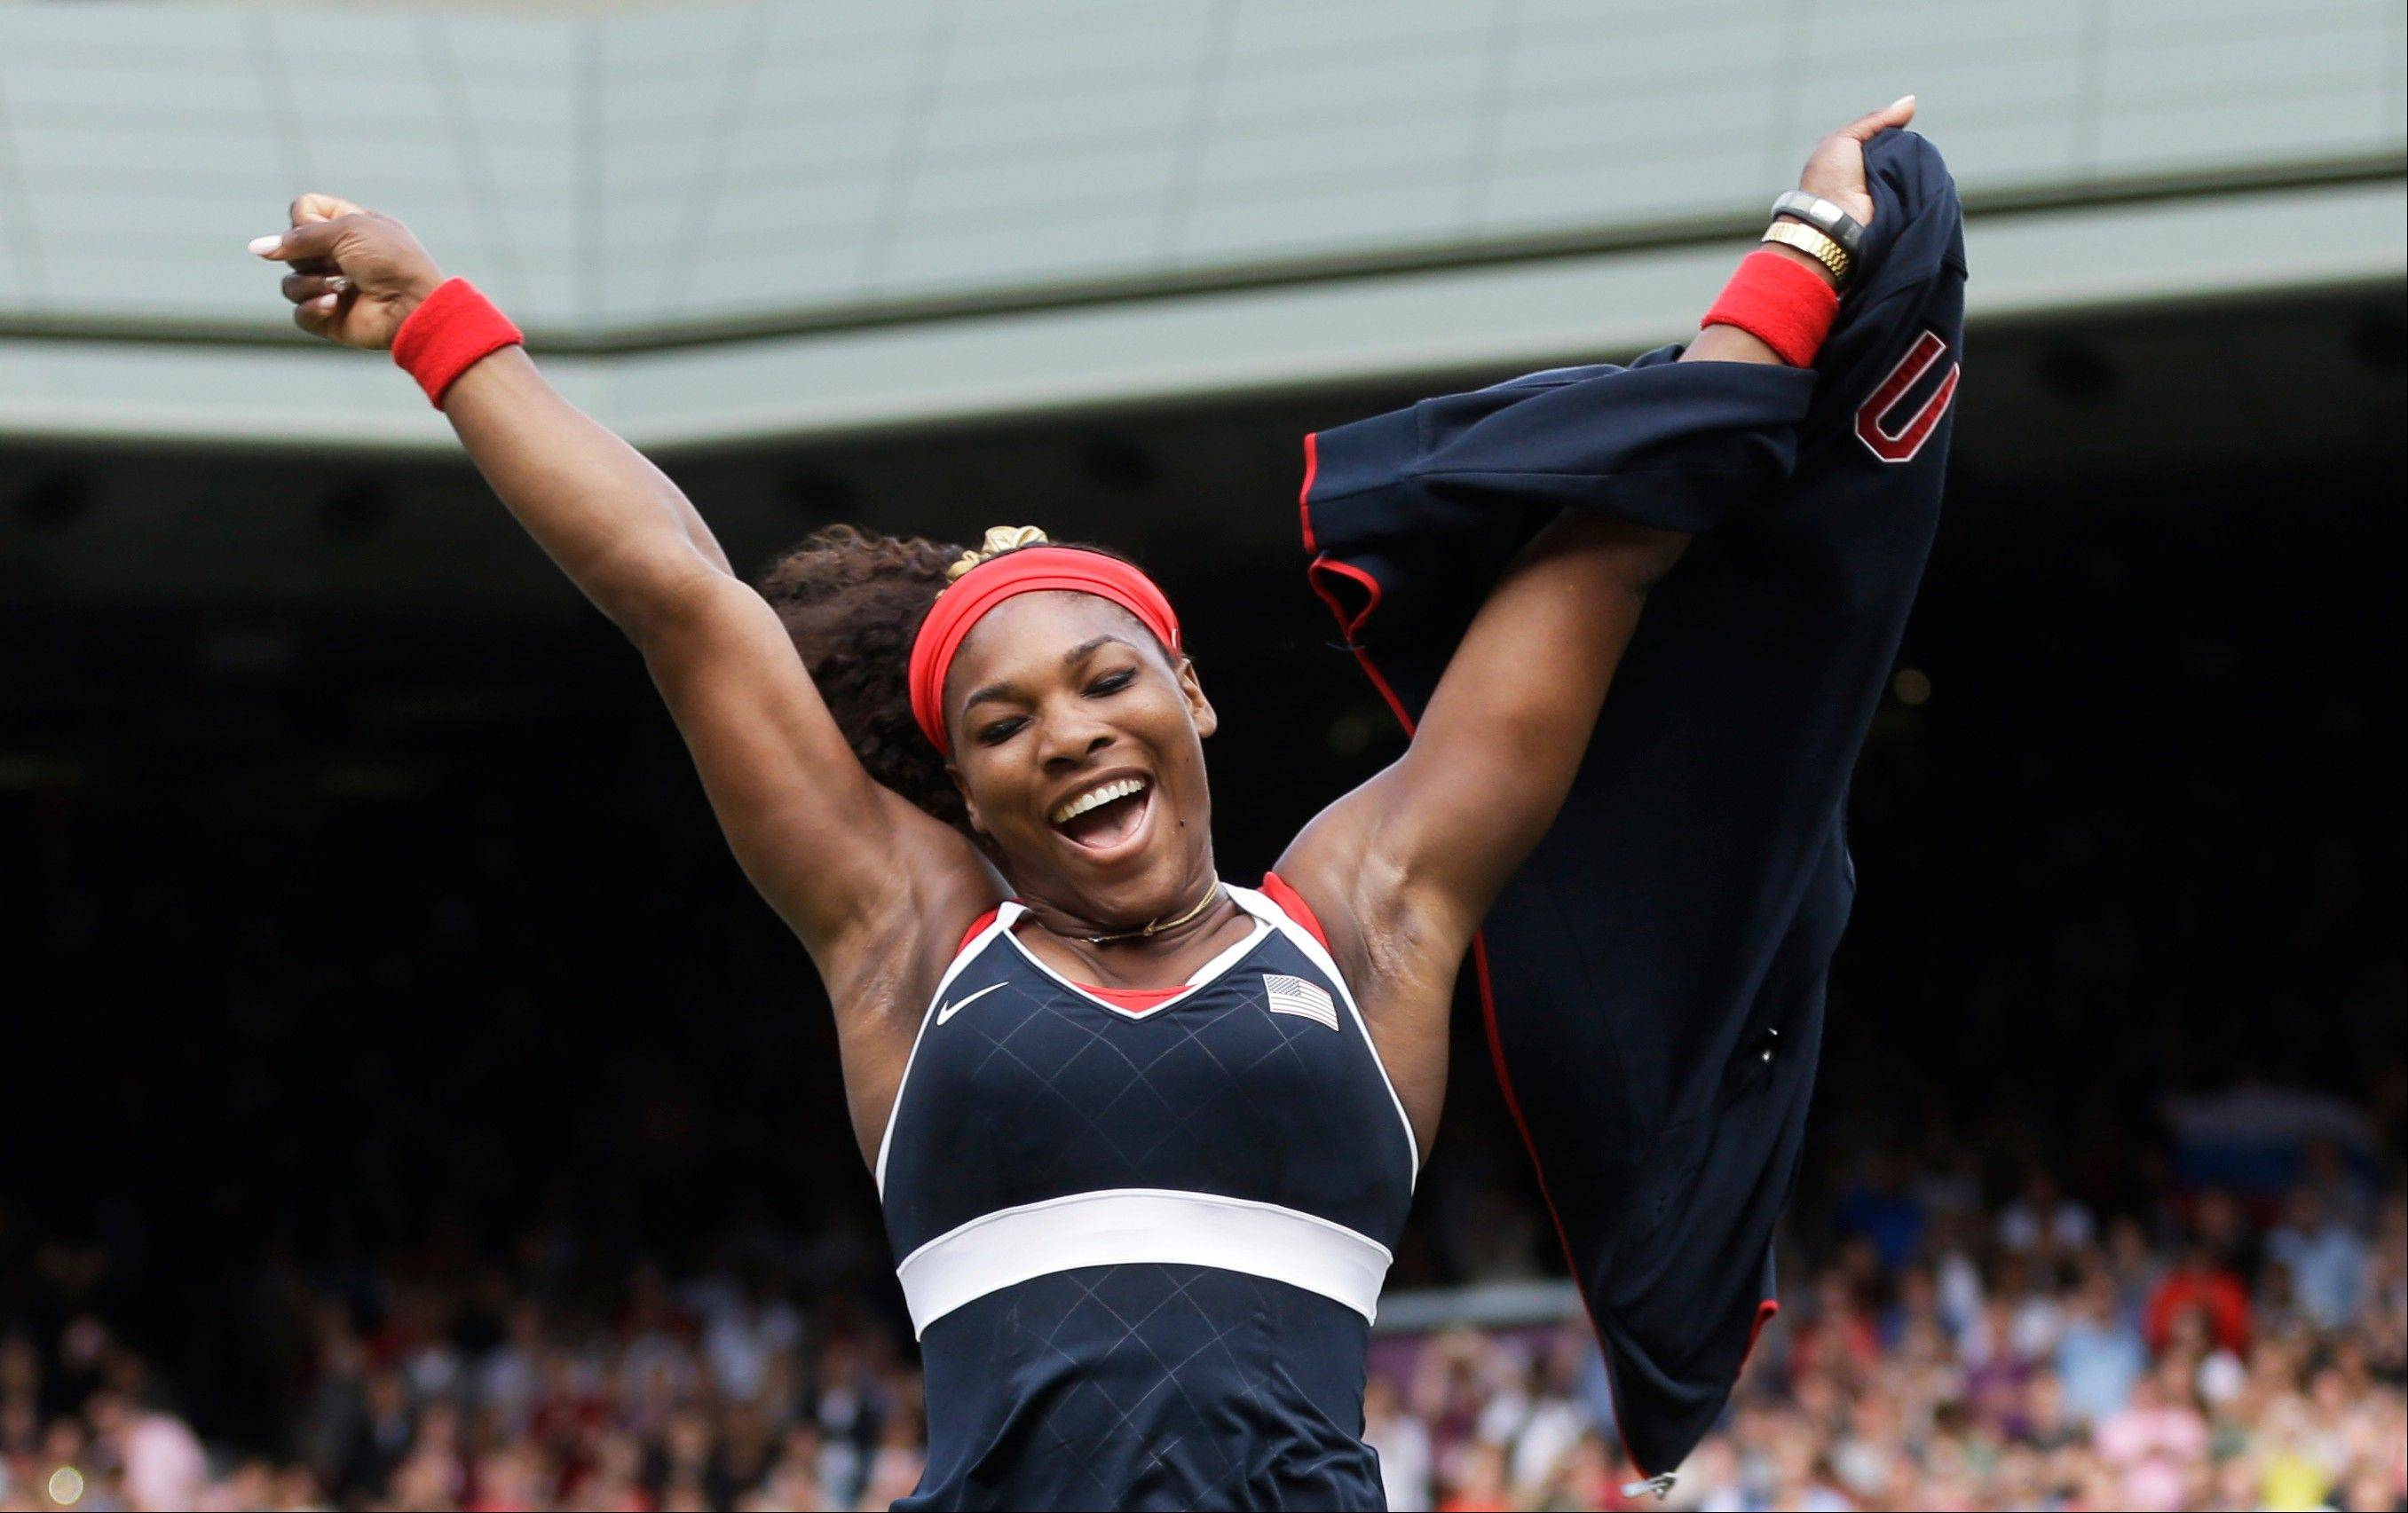 In this Saturday, Aug. 4, 2012 photo, United States' Serena Williams celebrates after defeating Maria Sharapova of Russia to win the women's singles gold medal match at the All England Lawn Tennis Club at Wimbledon, in London, at the 2012 Summer Olympics.